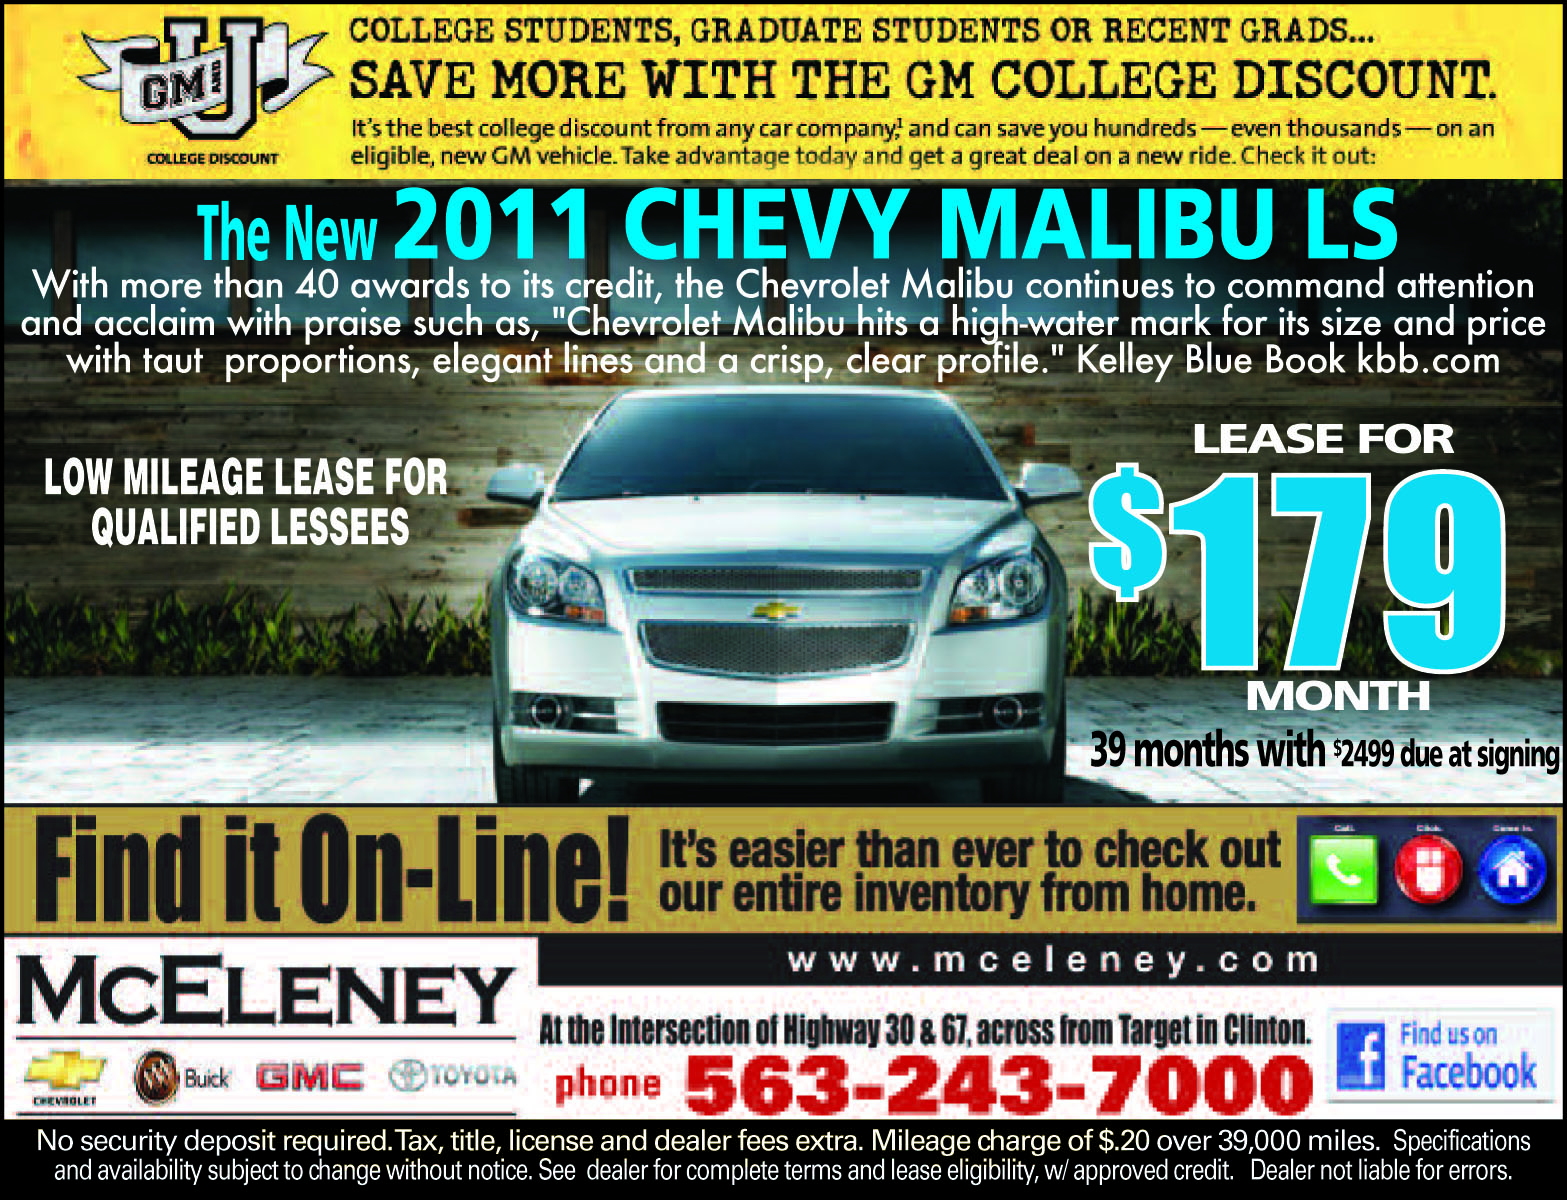 Mceleney Chevrolet Buick Gmc Toyota Check Out The New